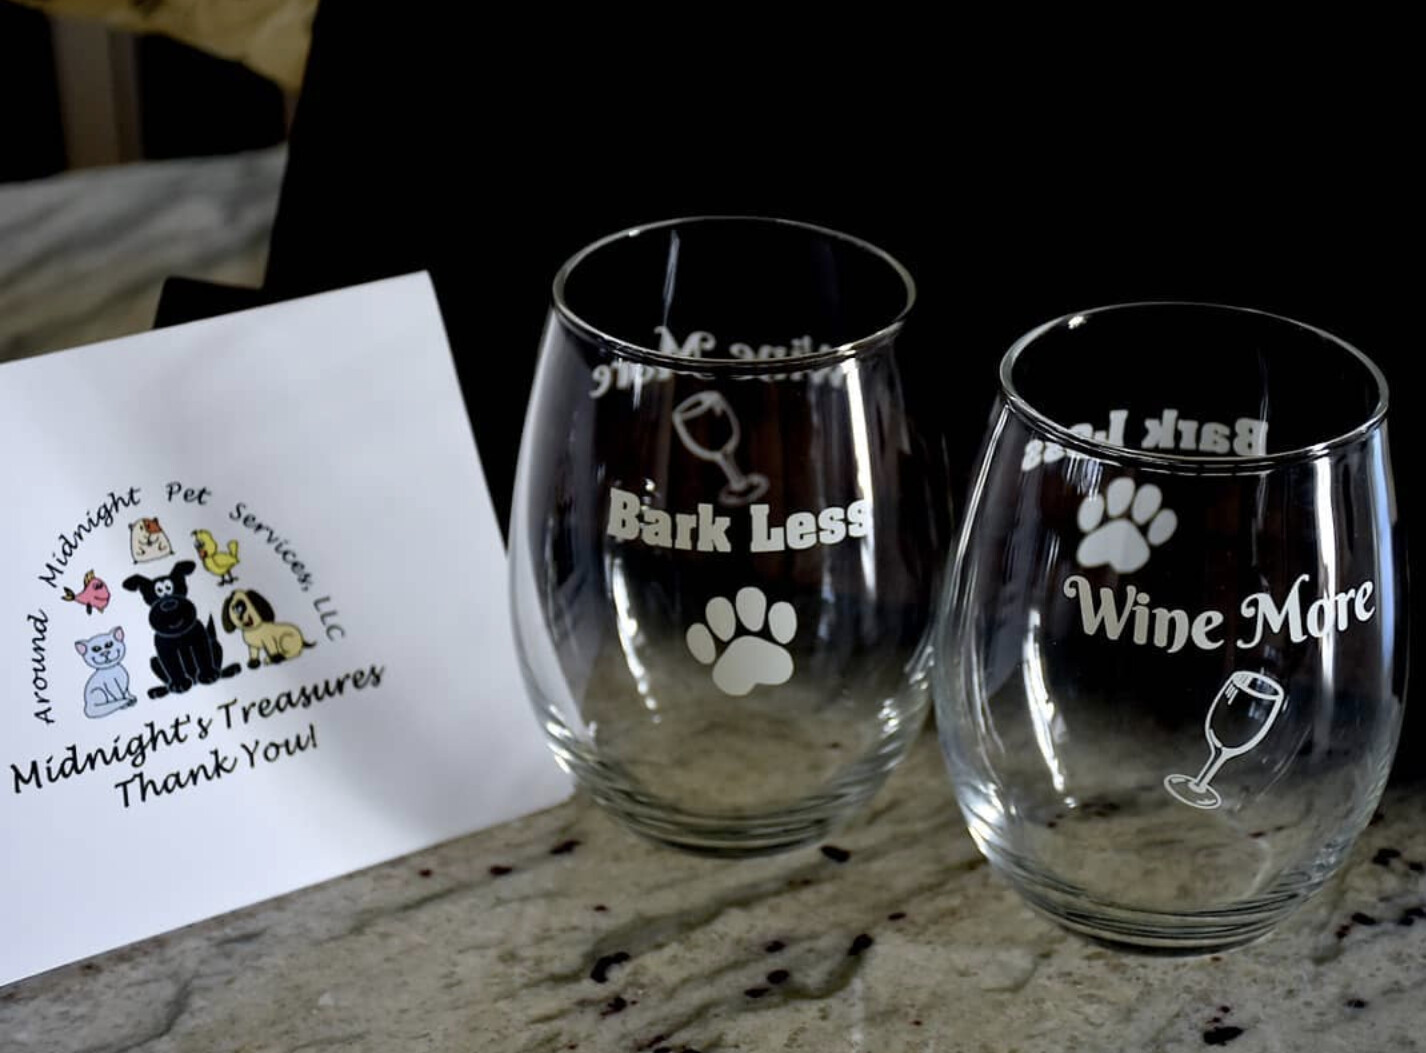 Bark Less Wine More 15oz Stemless Wine Glass